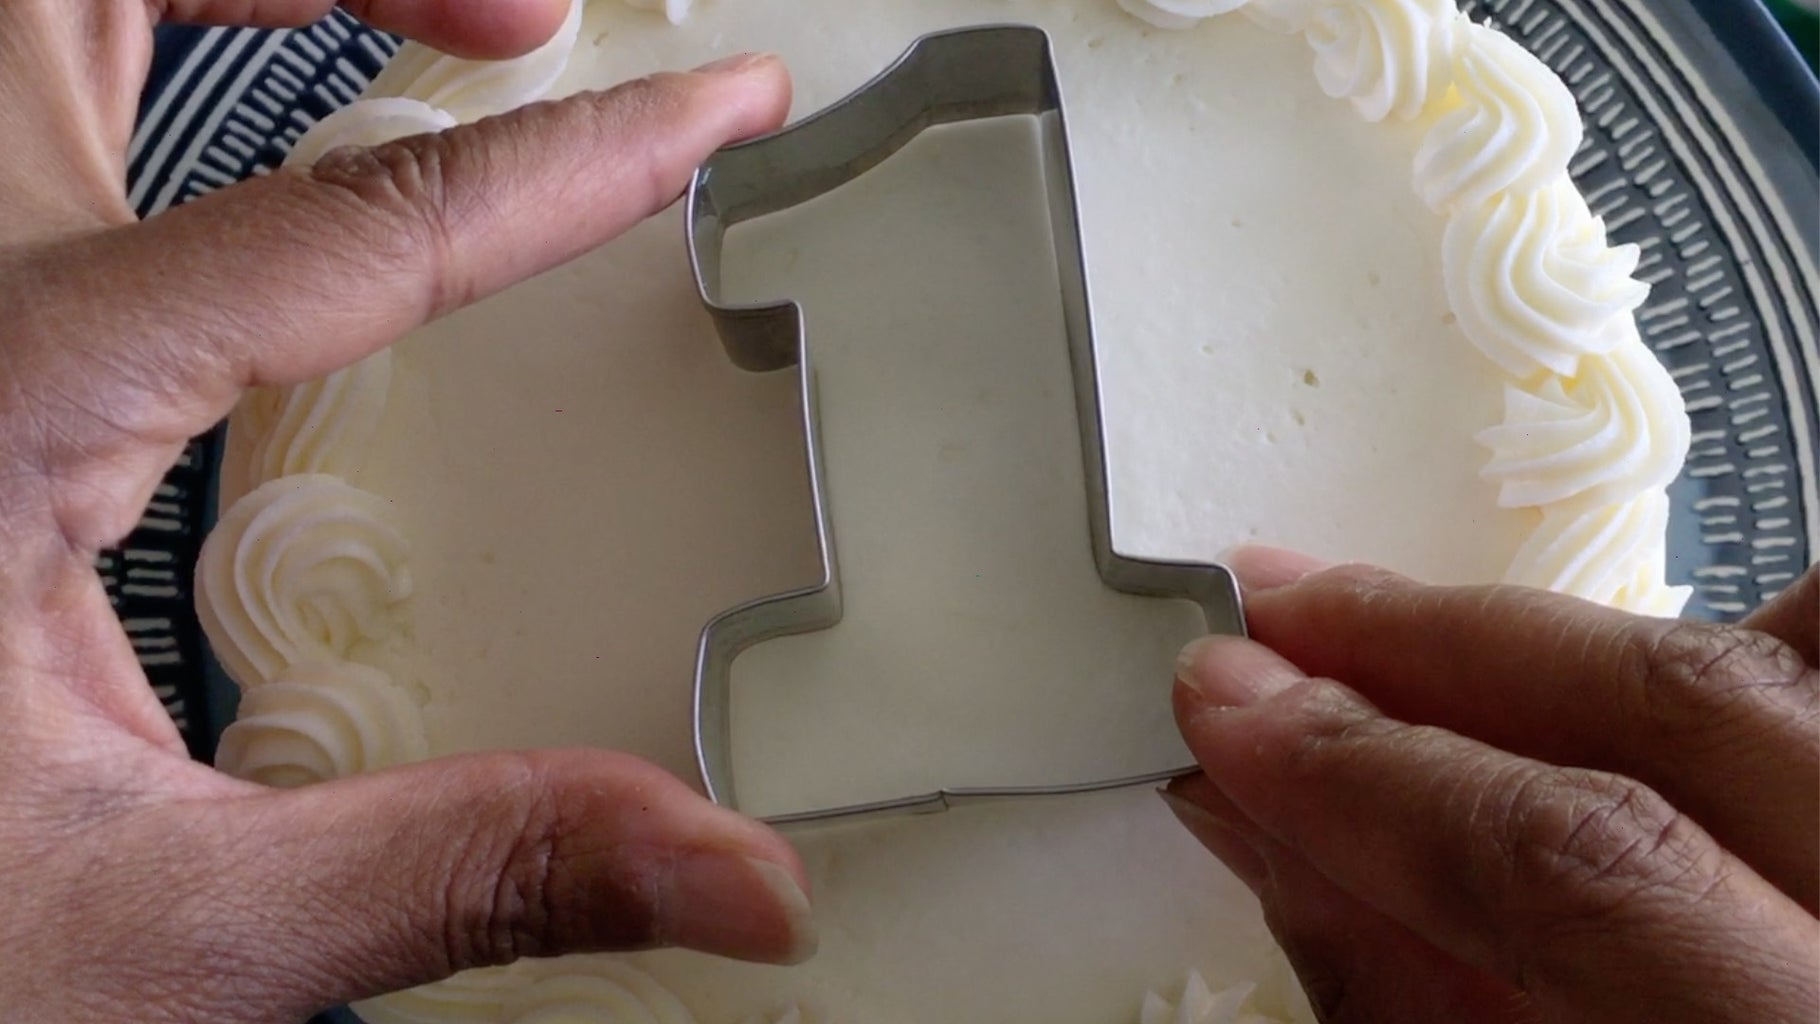 Step 13: Center the Cutter on the Top of the Cake